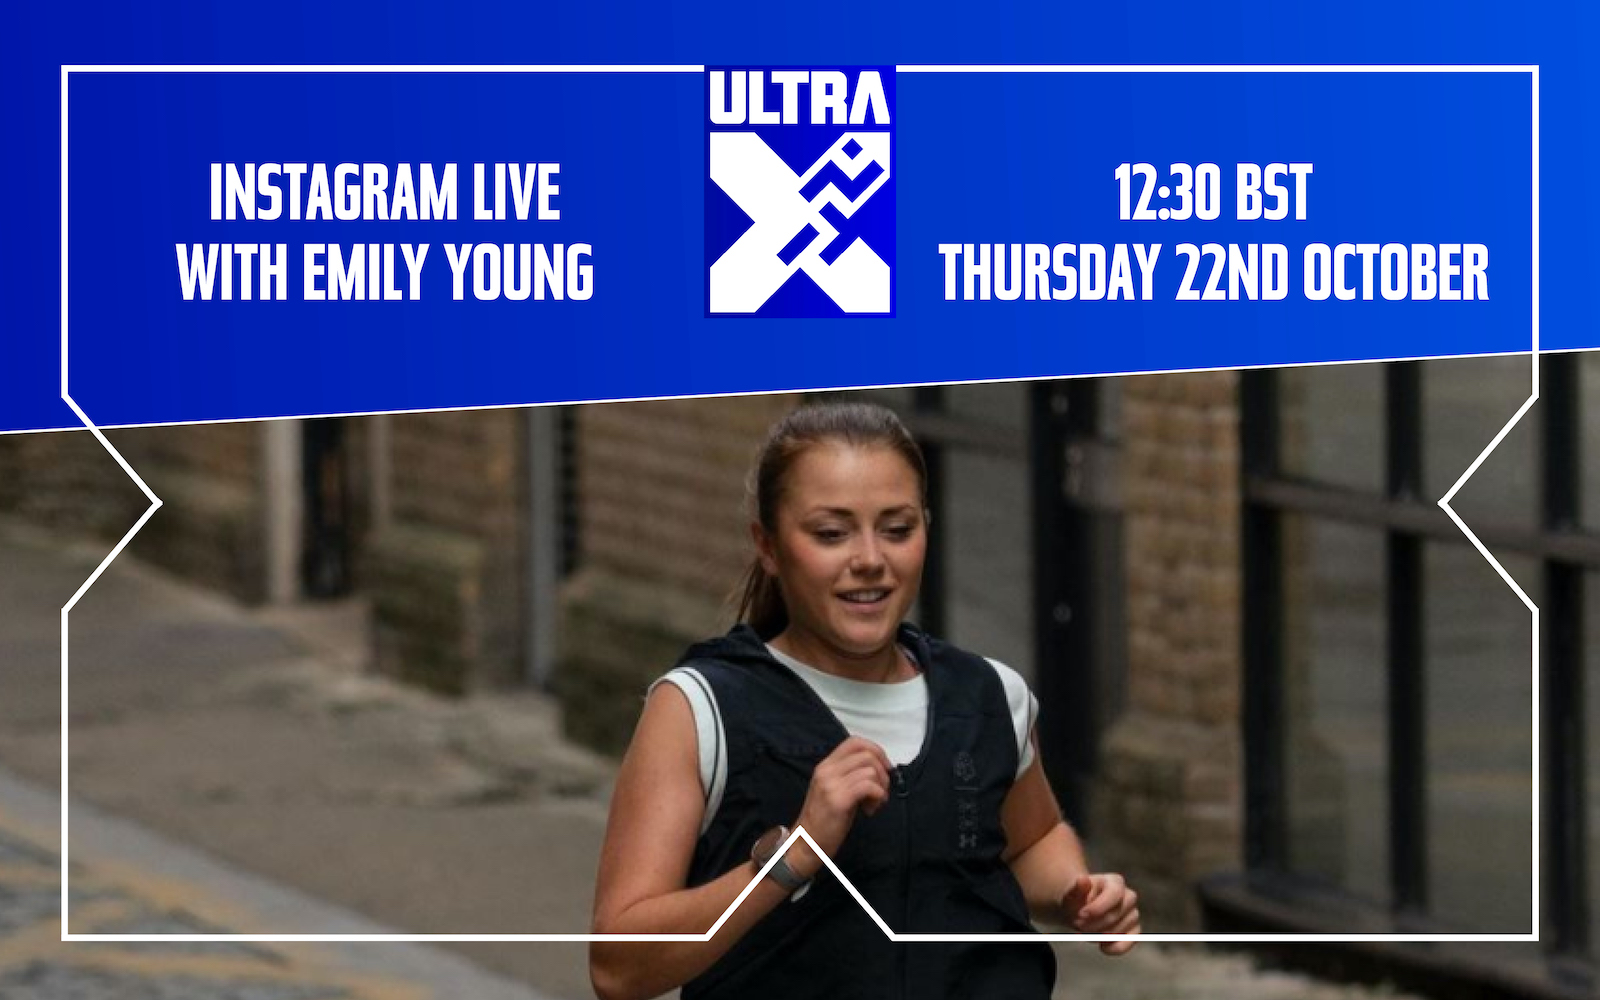 Ins­tagram Live With Emily Young: My First Ultra Mara­thon